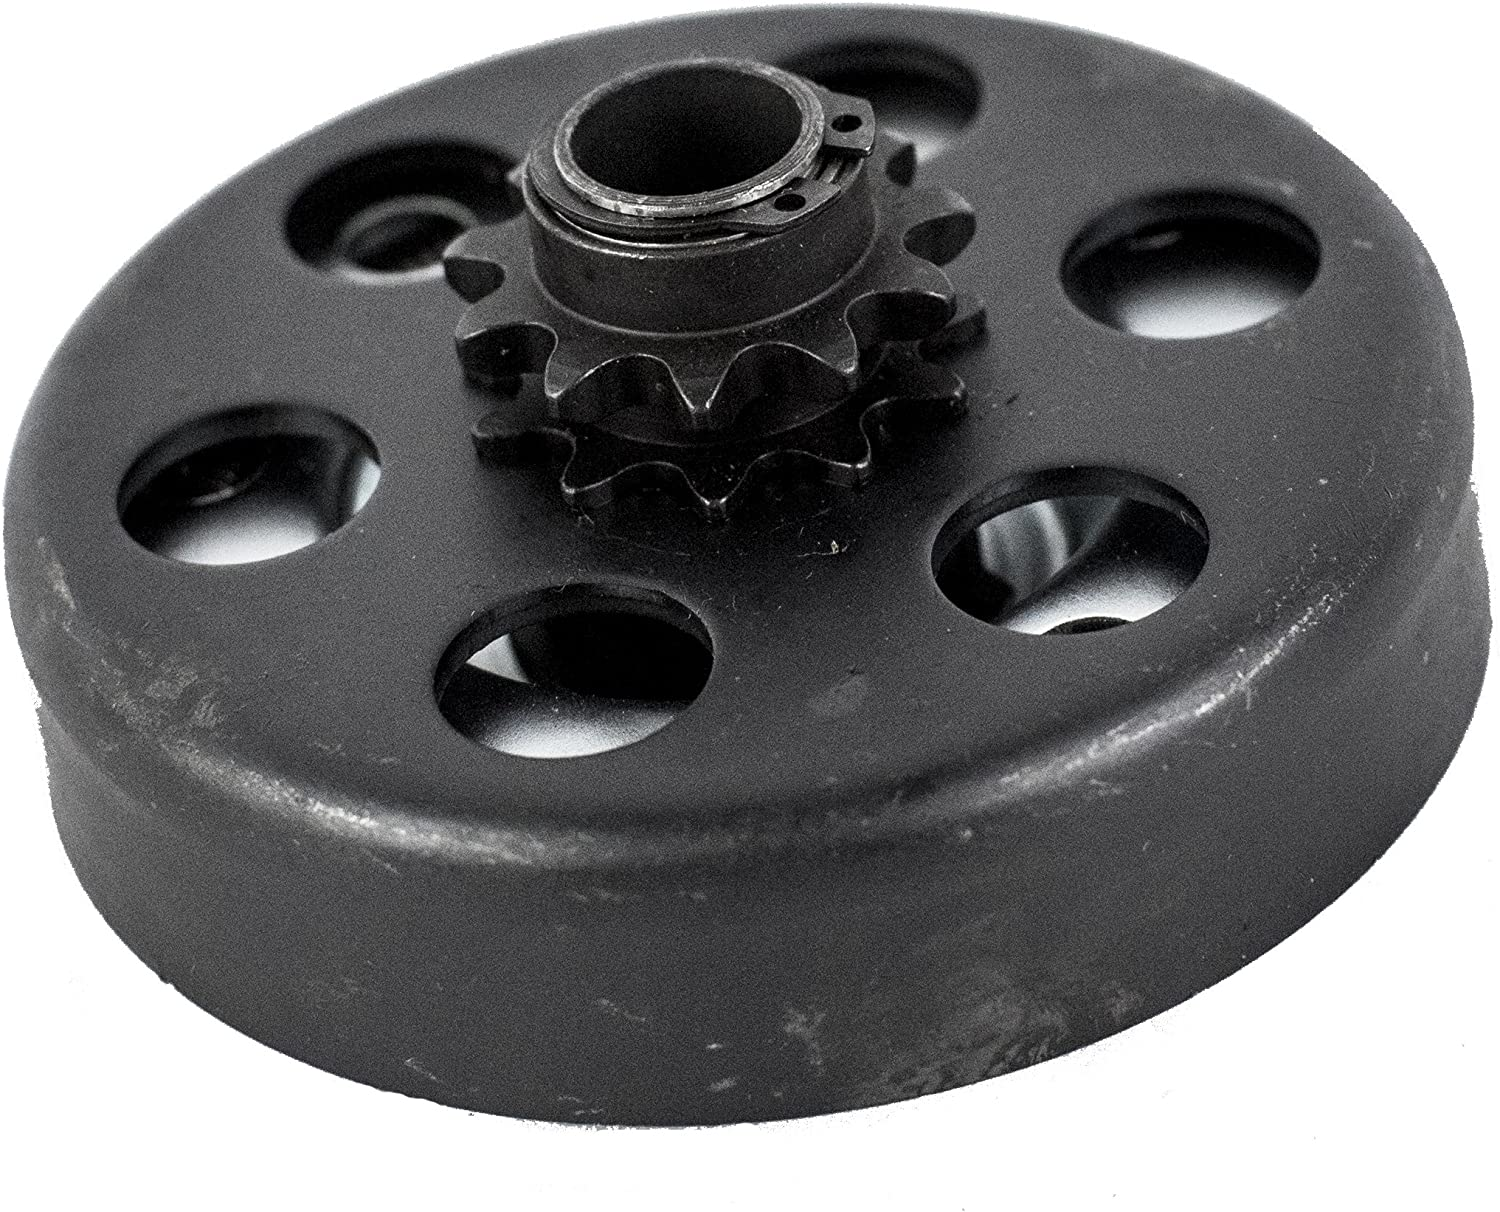 "Jeremywell Centrifugal Clutch 5/8"" Bore 11 Tooth 11T for 35 Chain for 2.8HP and 97cc Engines"